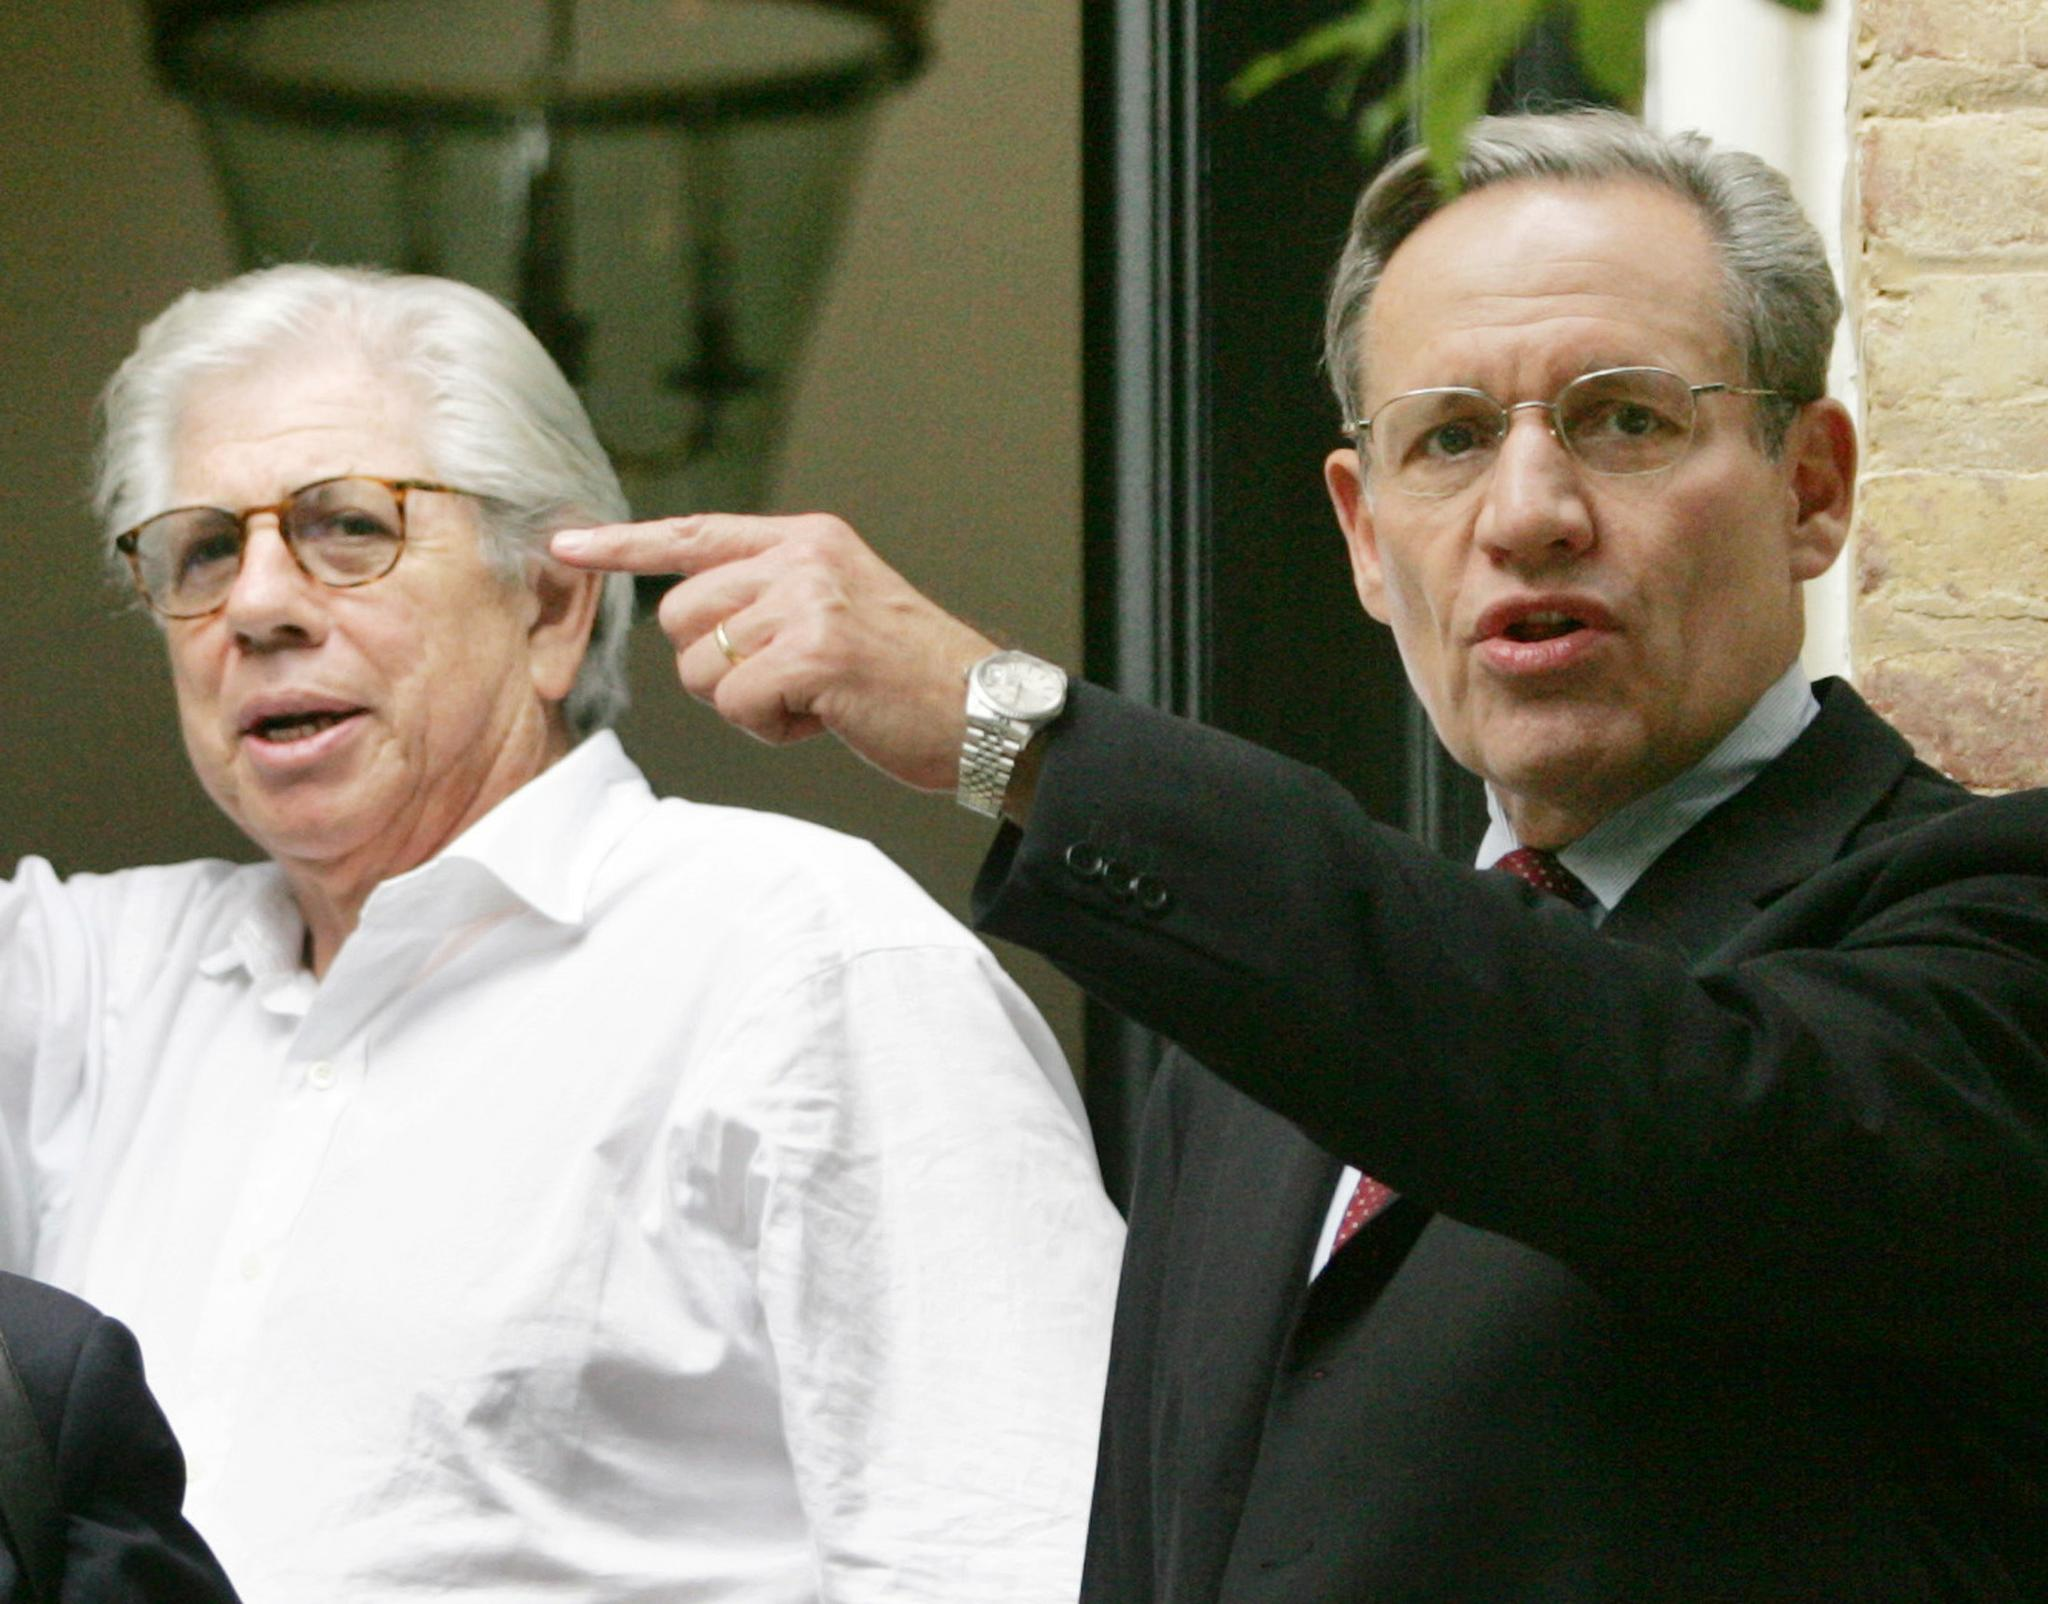 For Carl Bernstein (left) and Bob Woodward, it may feel as if history is repeating itself 45 years later.